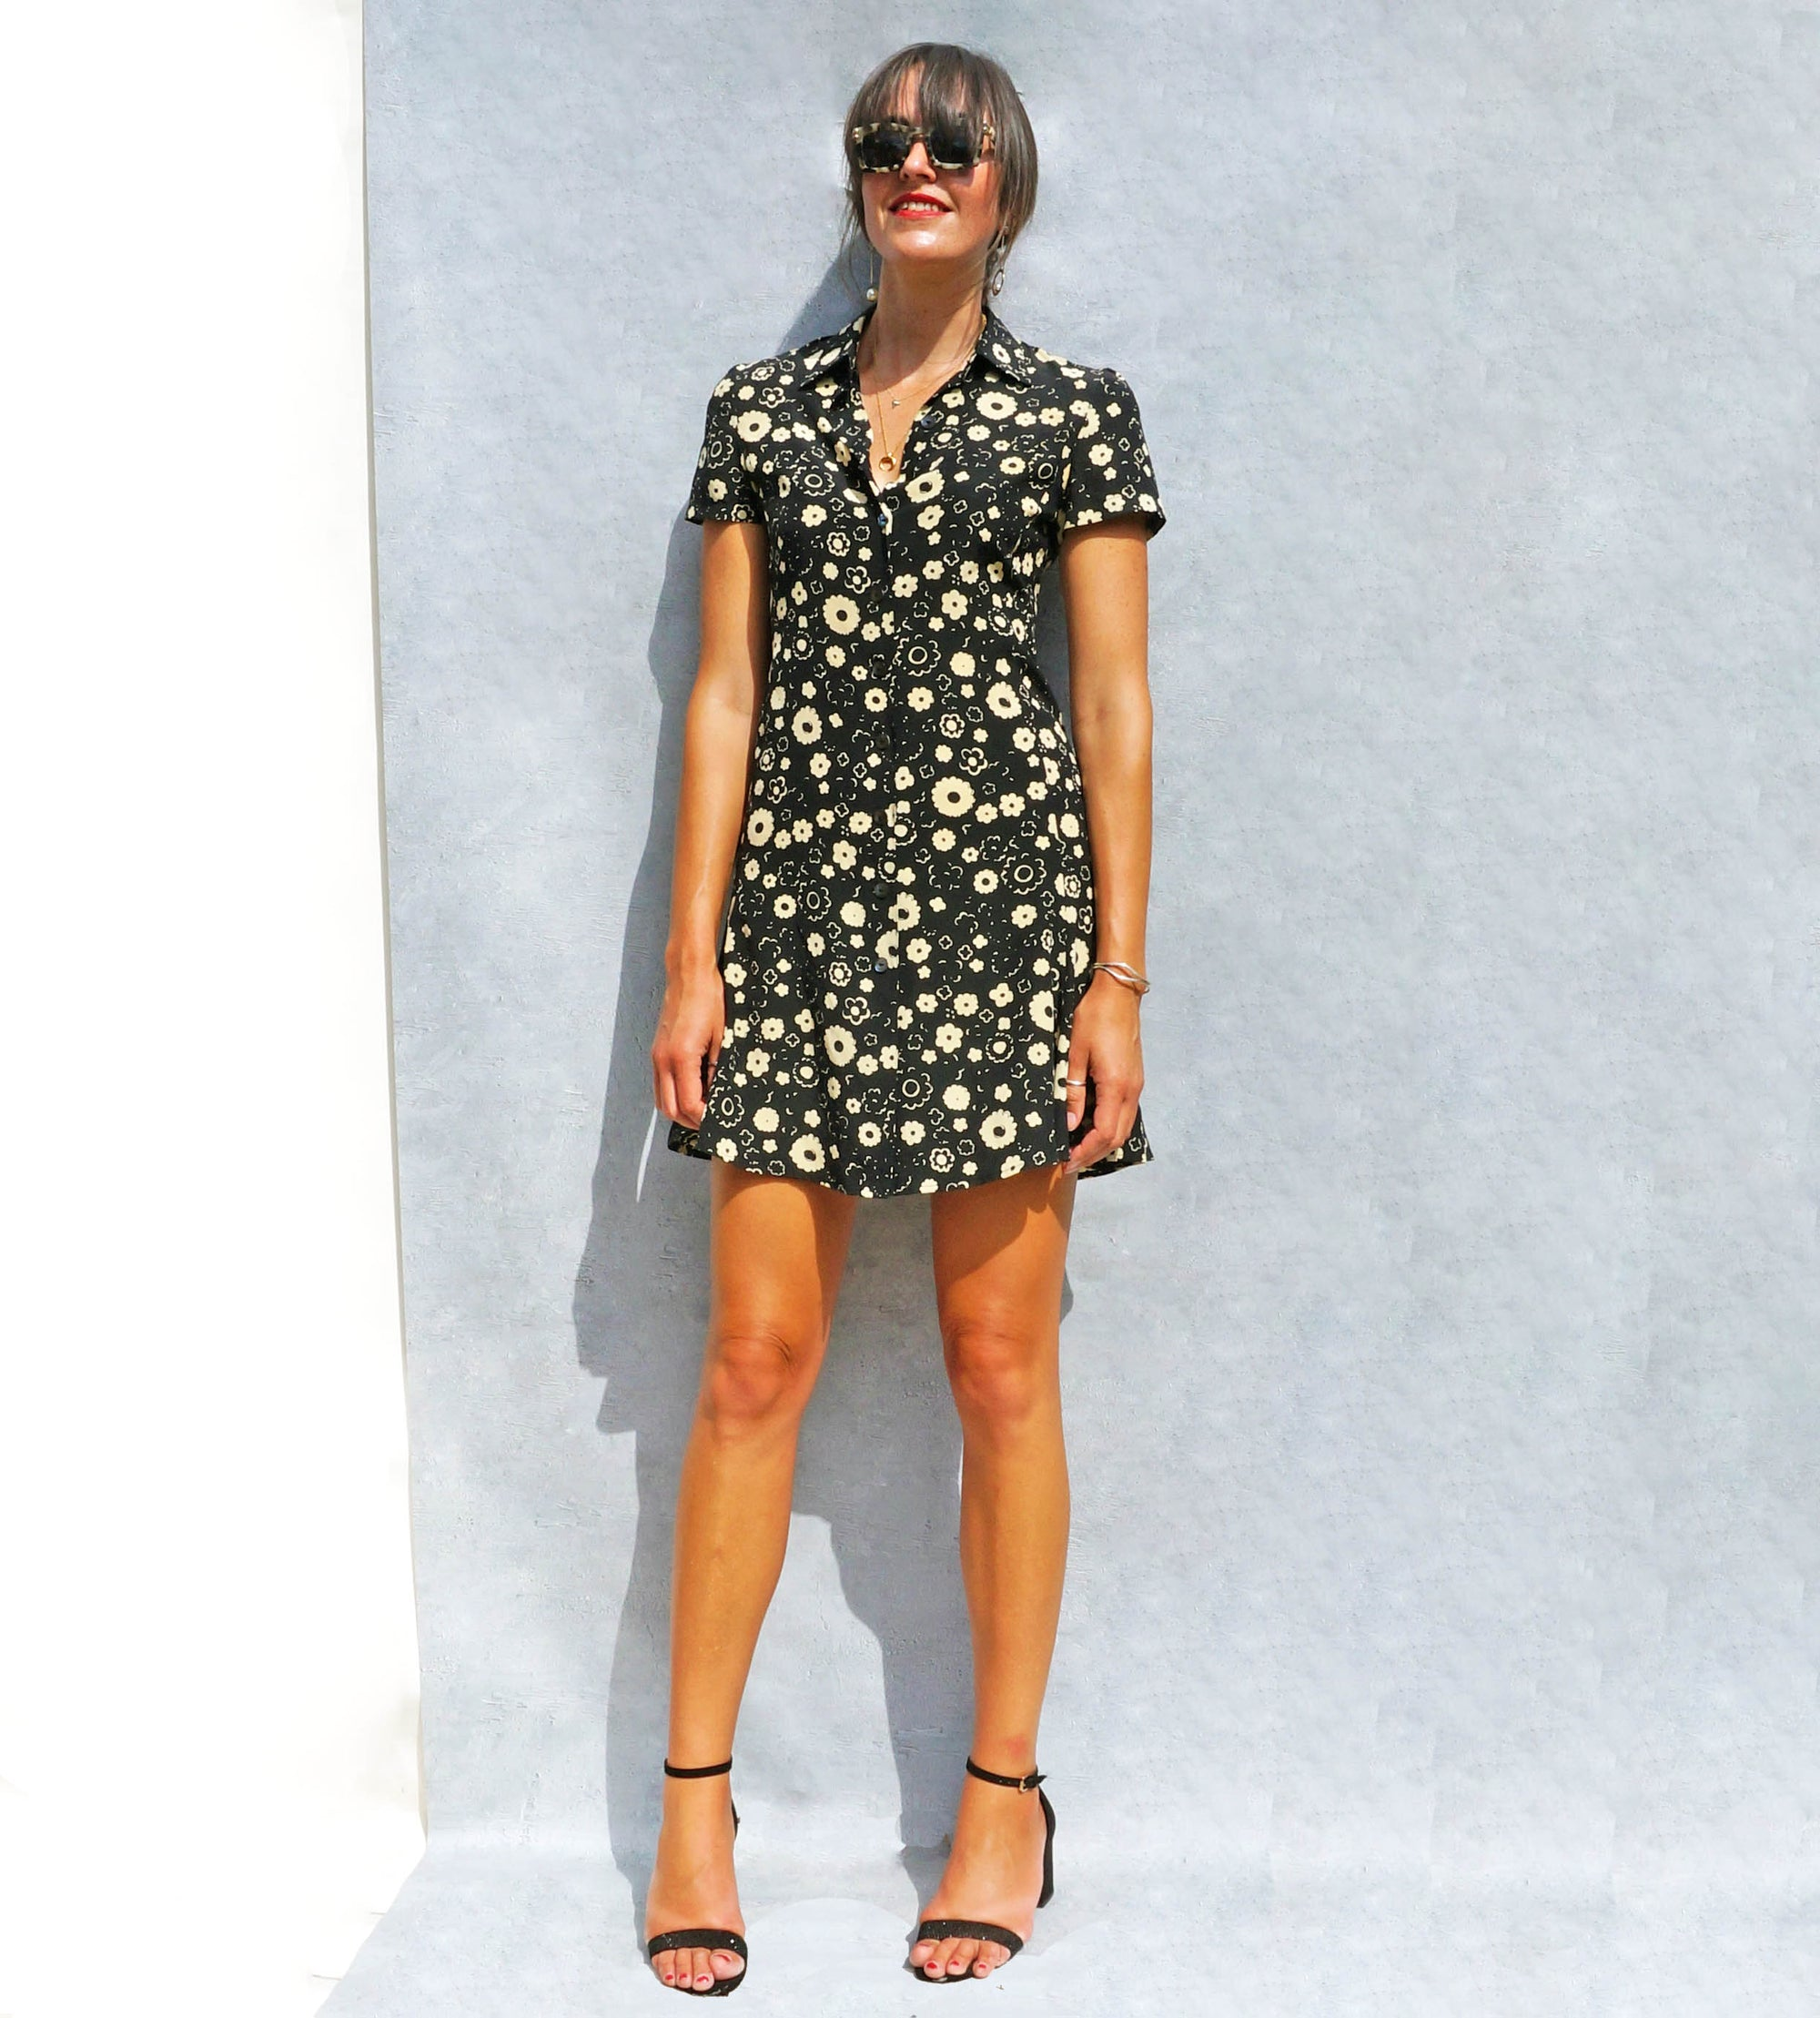 90s Silk Black Floral Max Mara Shirt Dress - Sustainable Fashion Brand UK - Ada's Attic Vintage -